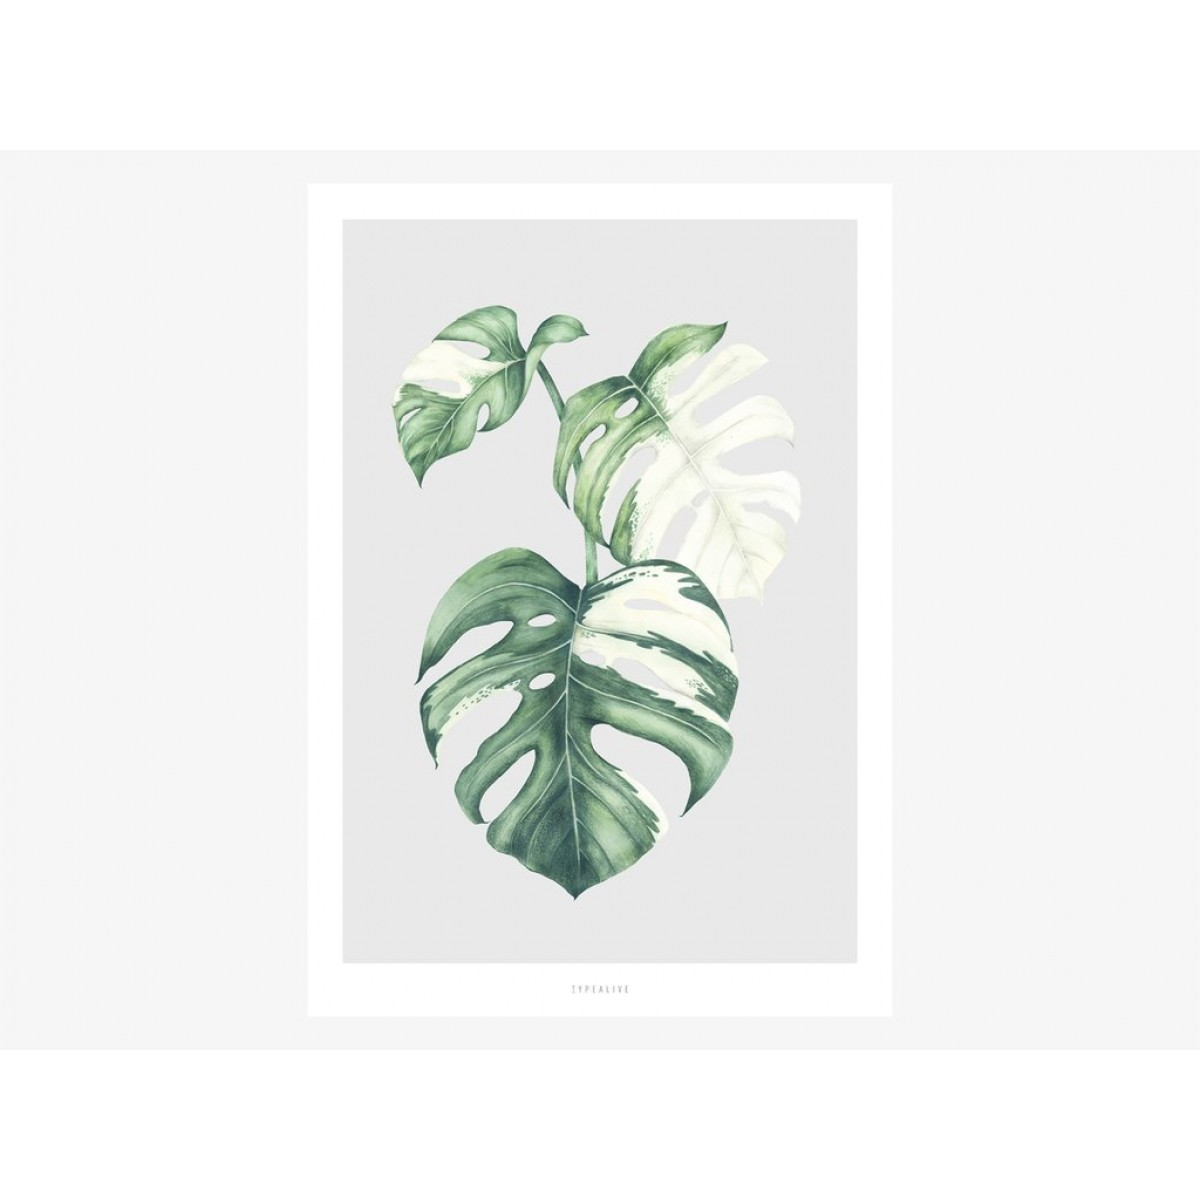 typealive / Tropical No. 5